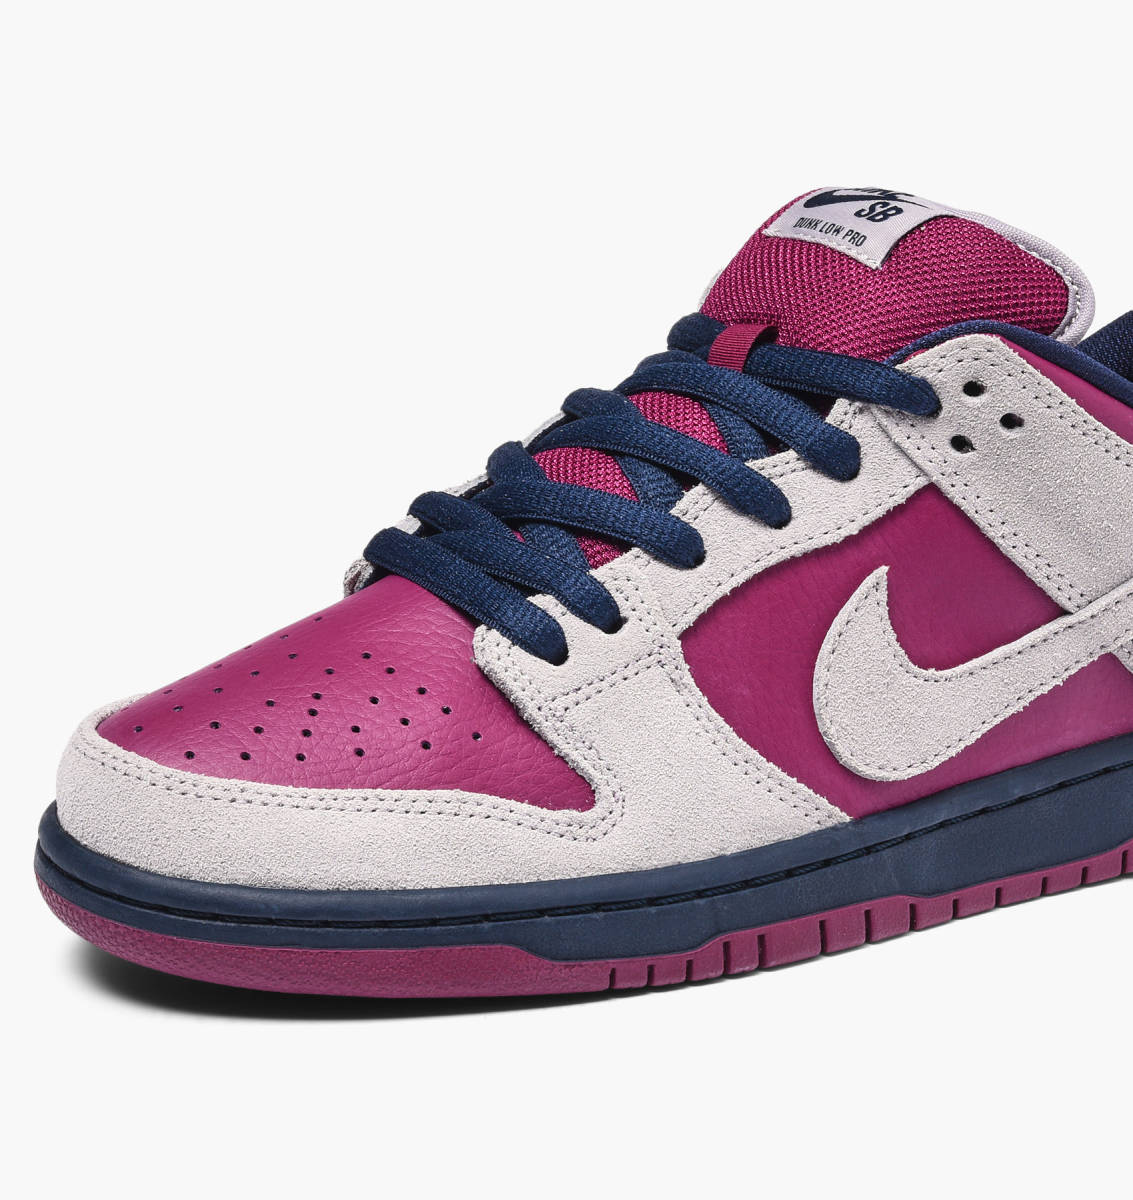 best cheap e5709 9e796 Now Available: Nike SB Dunk Low Pro